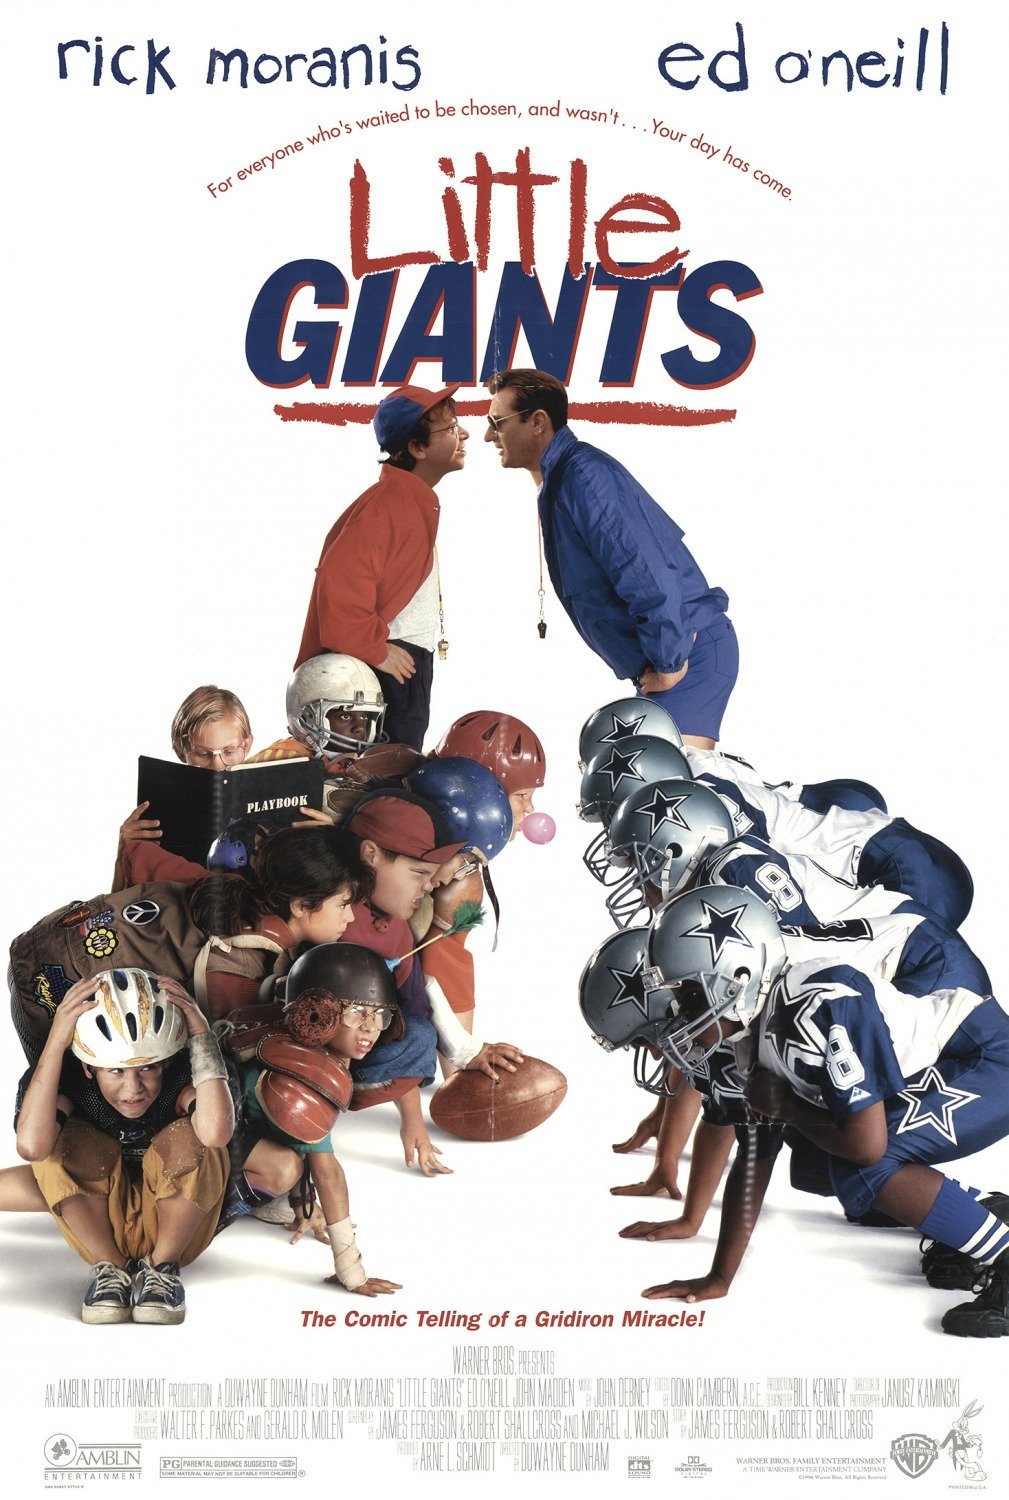 Ed O'Neill Signed Little Giants Image (8x10, 11x17)